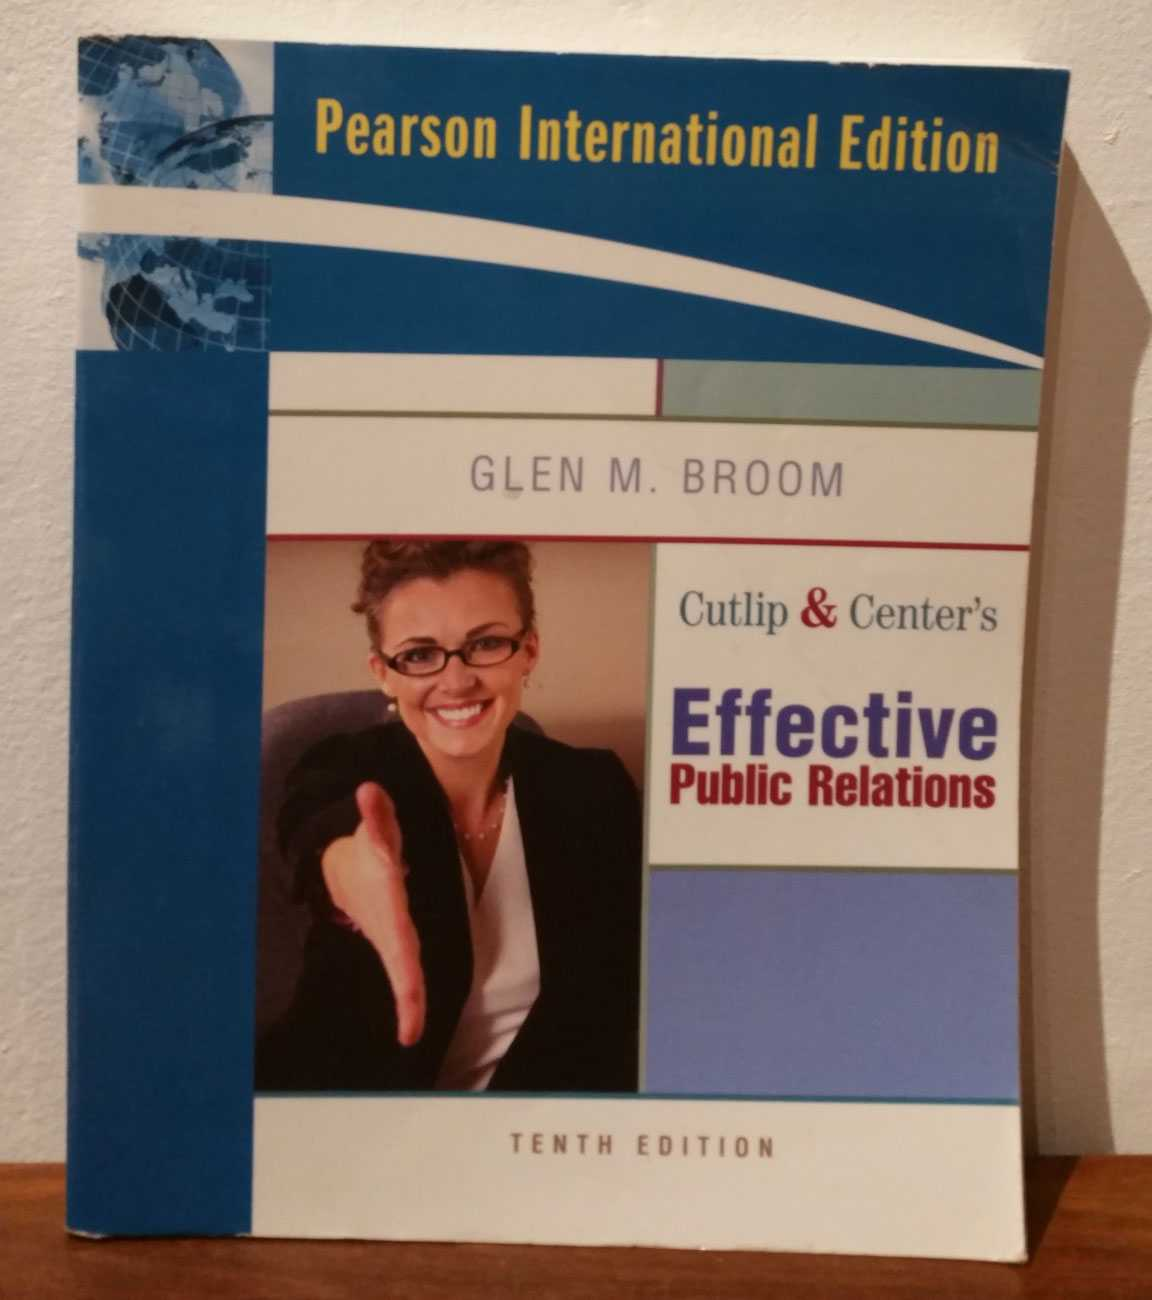 Cutlip & Center's Effective Public Relations, Glen M. Broom